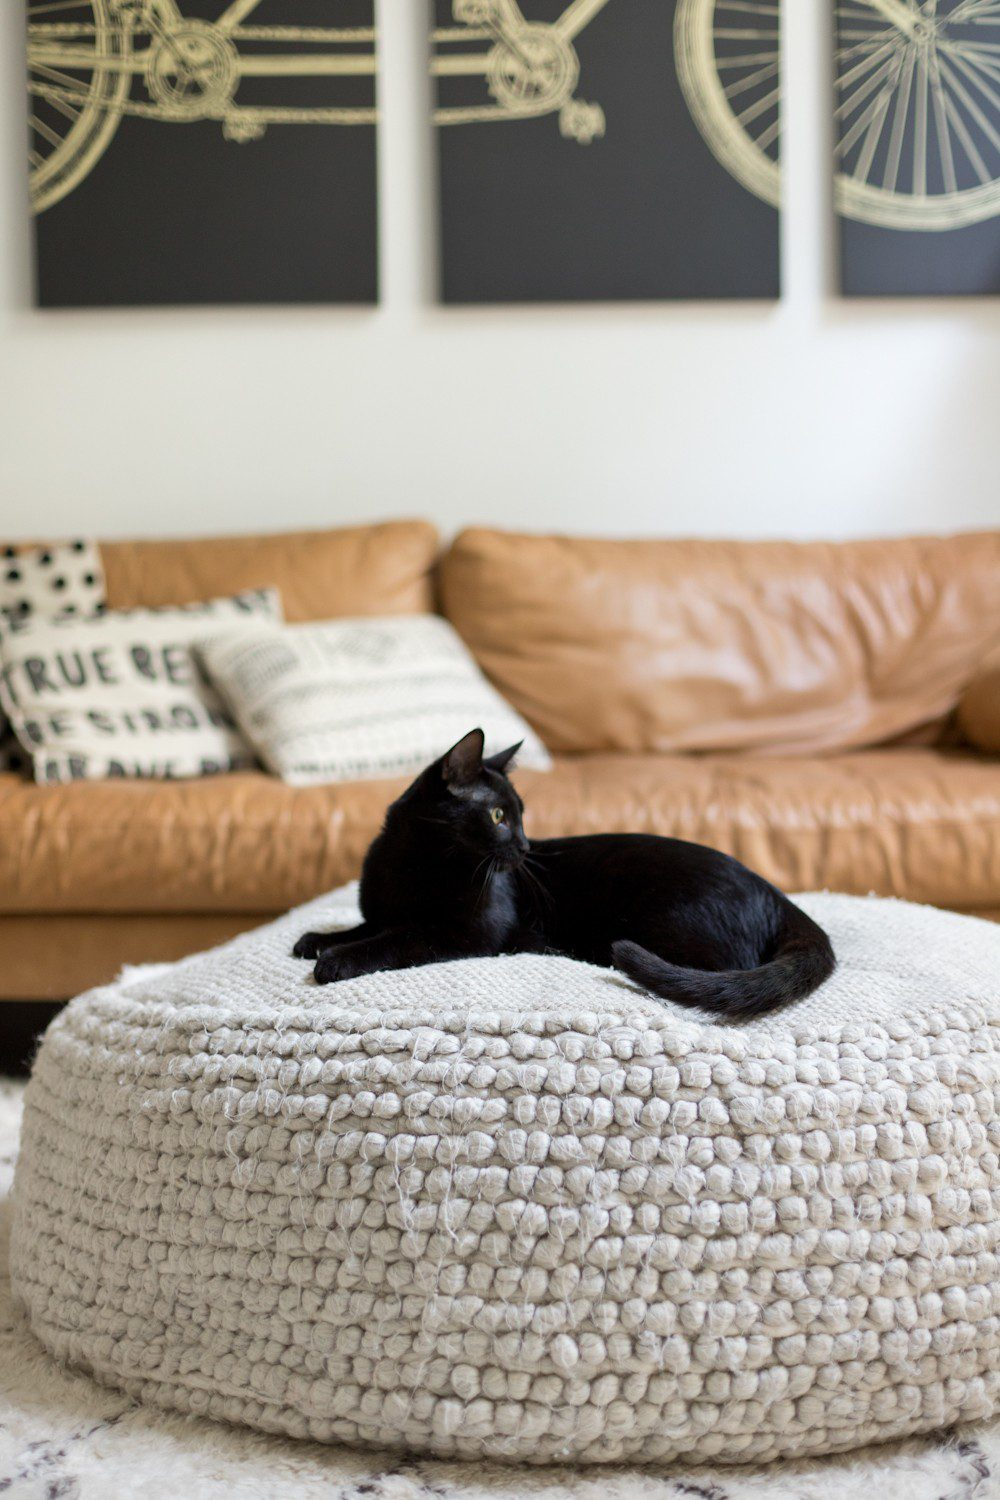 5 Essential Things for the Best Kitten Care from top US lifestyle blogger Tabitha Blue of Fresh Mommy Blog! I hate cat litter! Here's why the Litter Robot is amazing and our new kitten care best friend. | How to Train Your Cat to Use the Litter Box by popular Tampa life and style blog, Fresh Mommy: image of a black cat sitting on a ottoman.